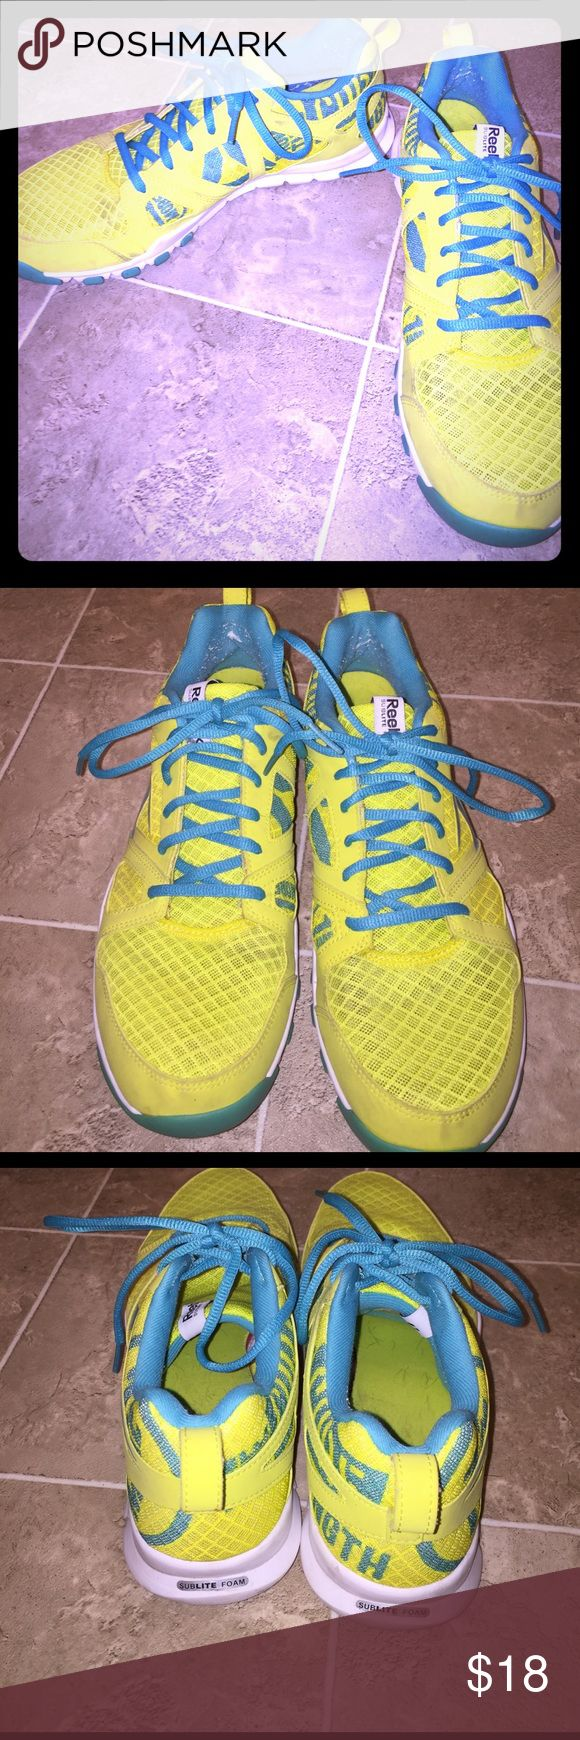 Reebok sublite foam sneakers Reebok Sublite Foam sneakers, size 9.5 women's, neon yellow and teal. Only worn a handful of times. Great shoe. Reebok Shoes Athletic Shoes